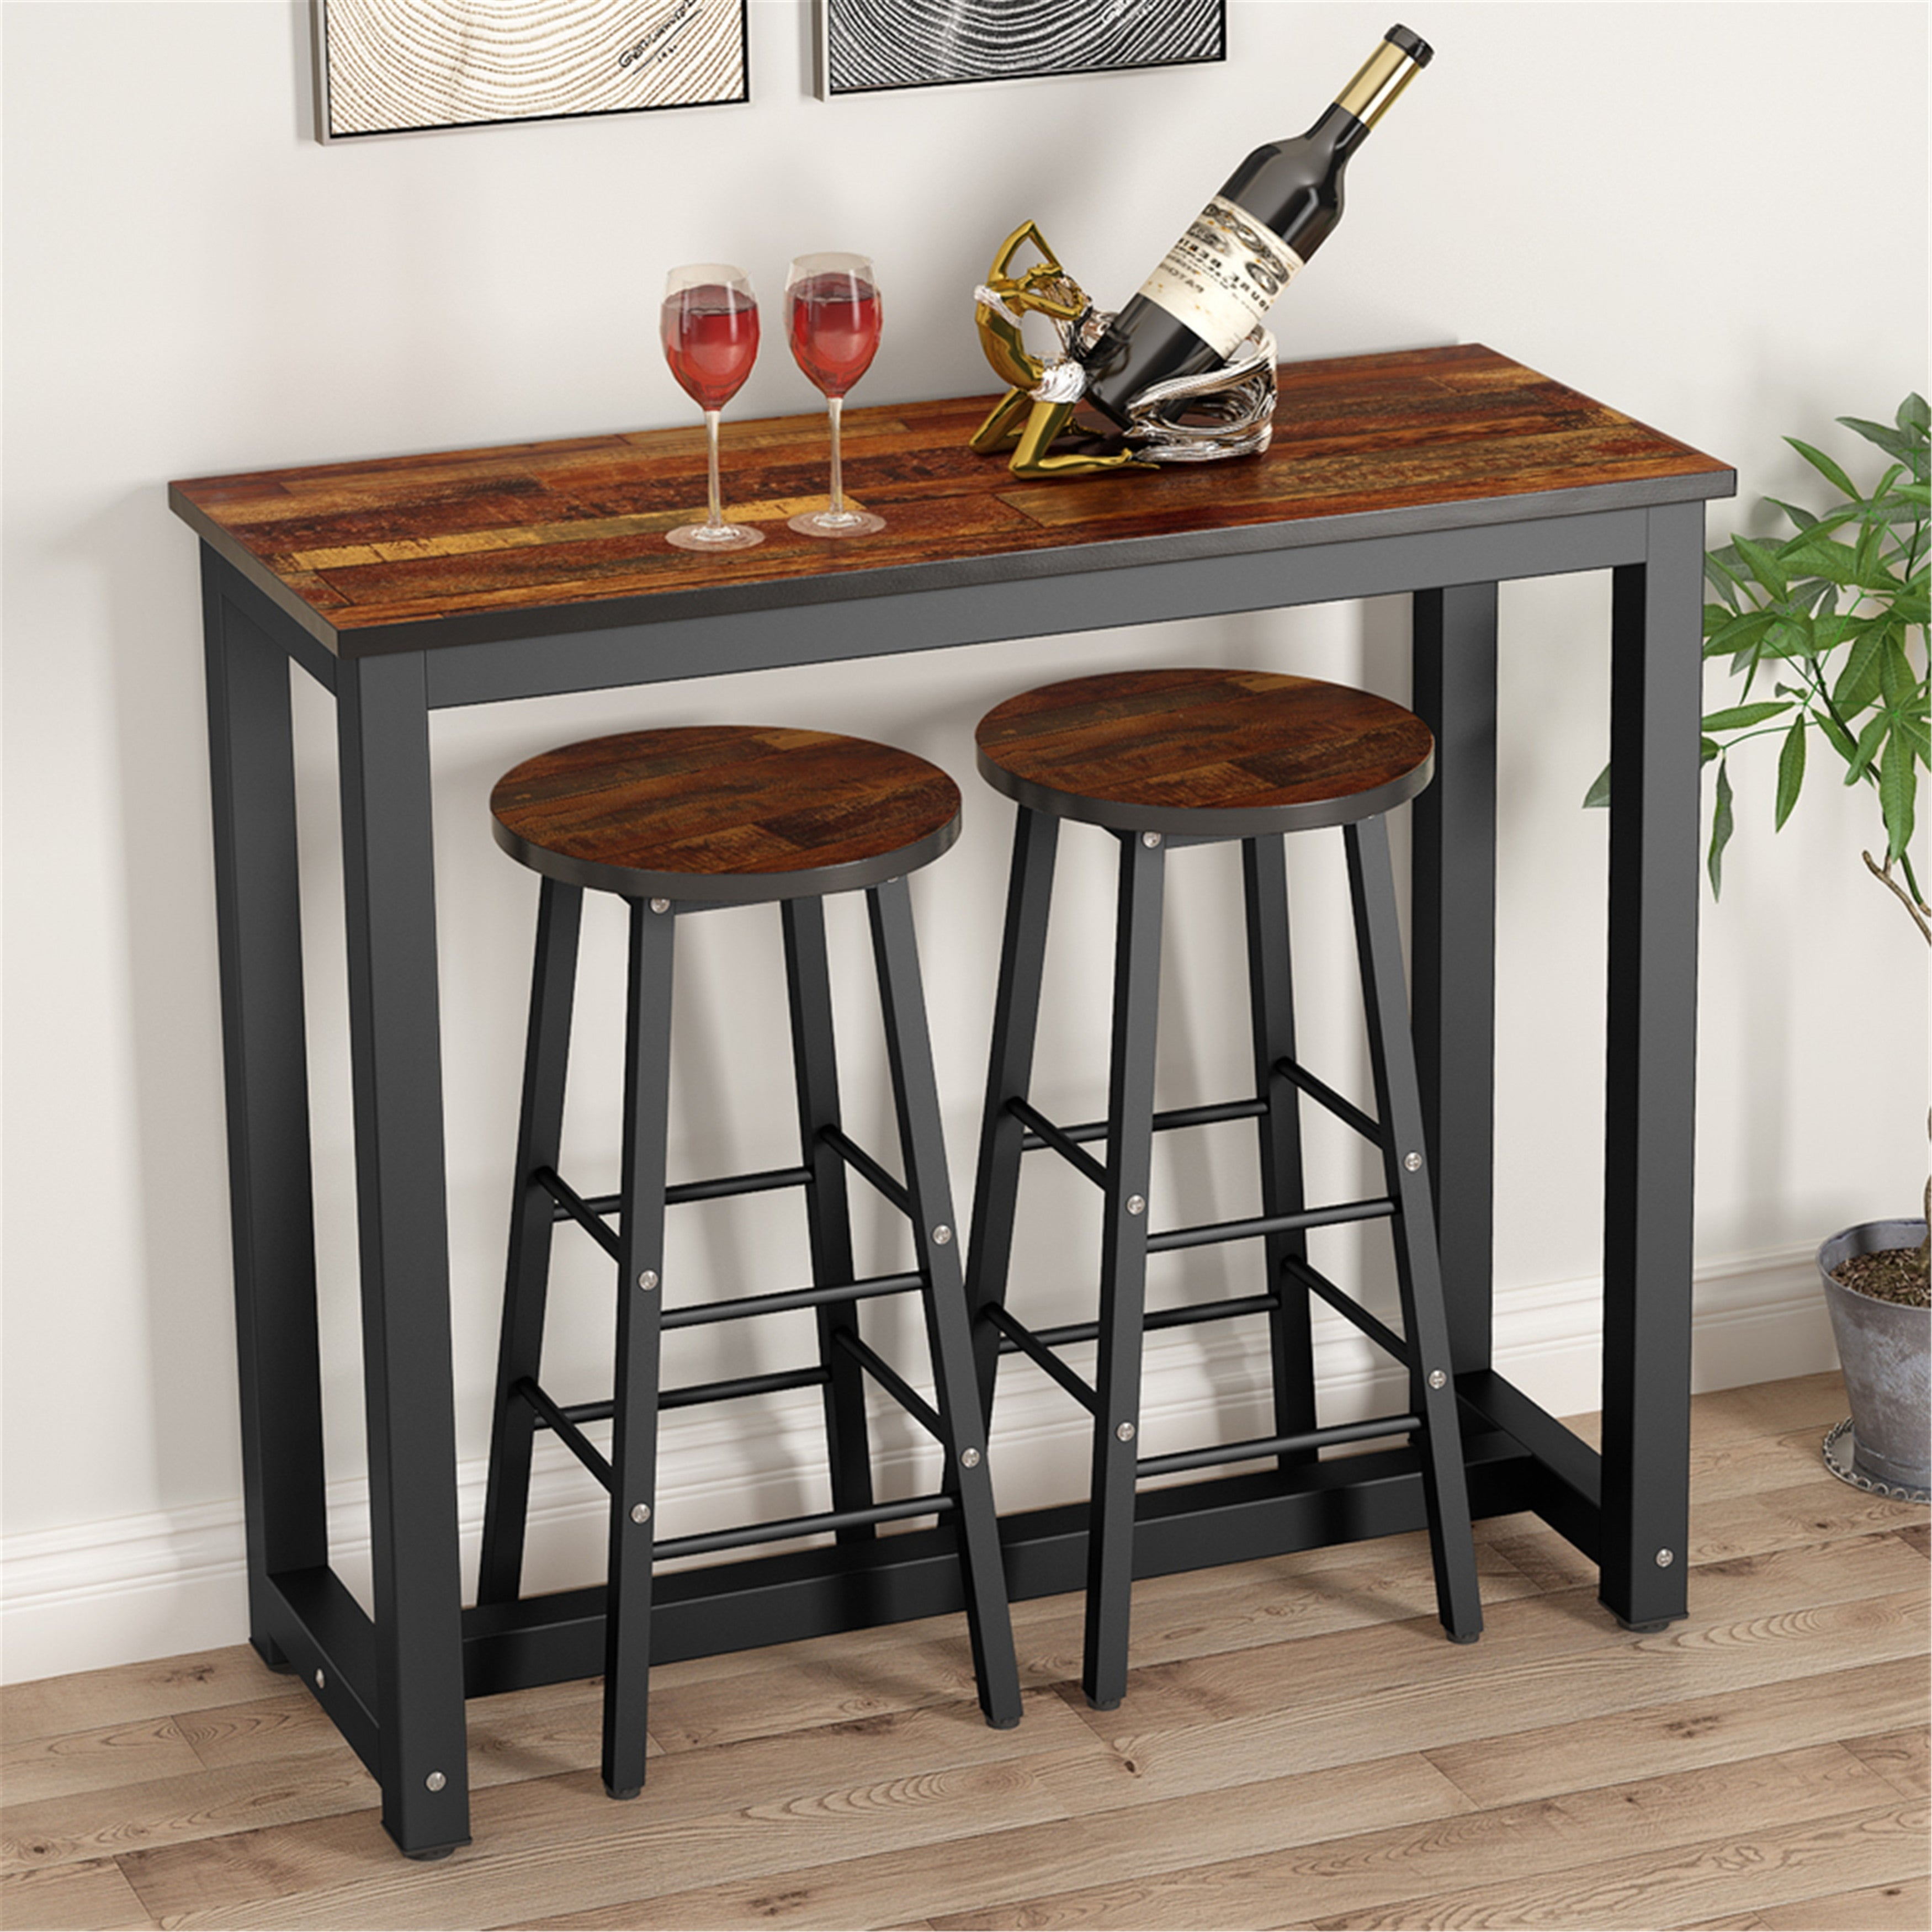 3 Piece Pub Table Set Counter Height Dining Table Set With 2 Stools Overstock 28472789 Rustic Brown